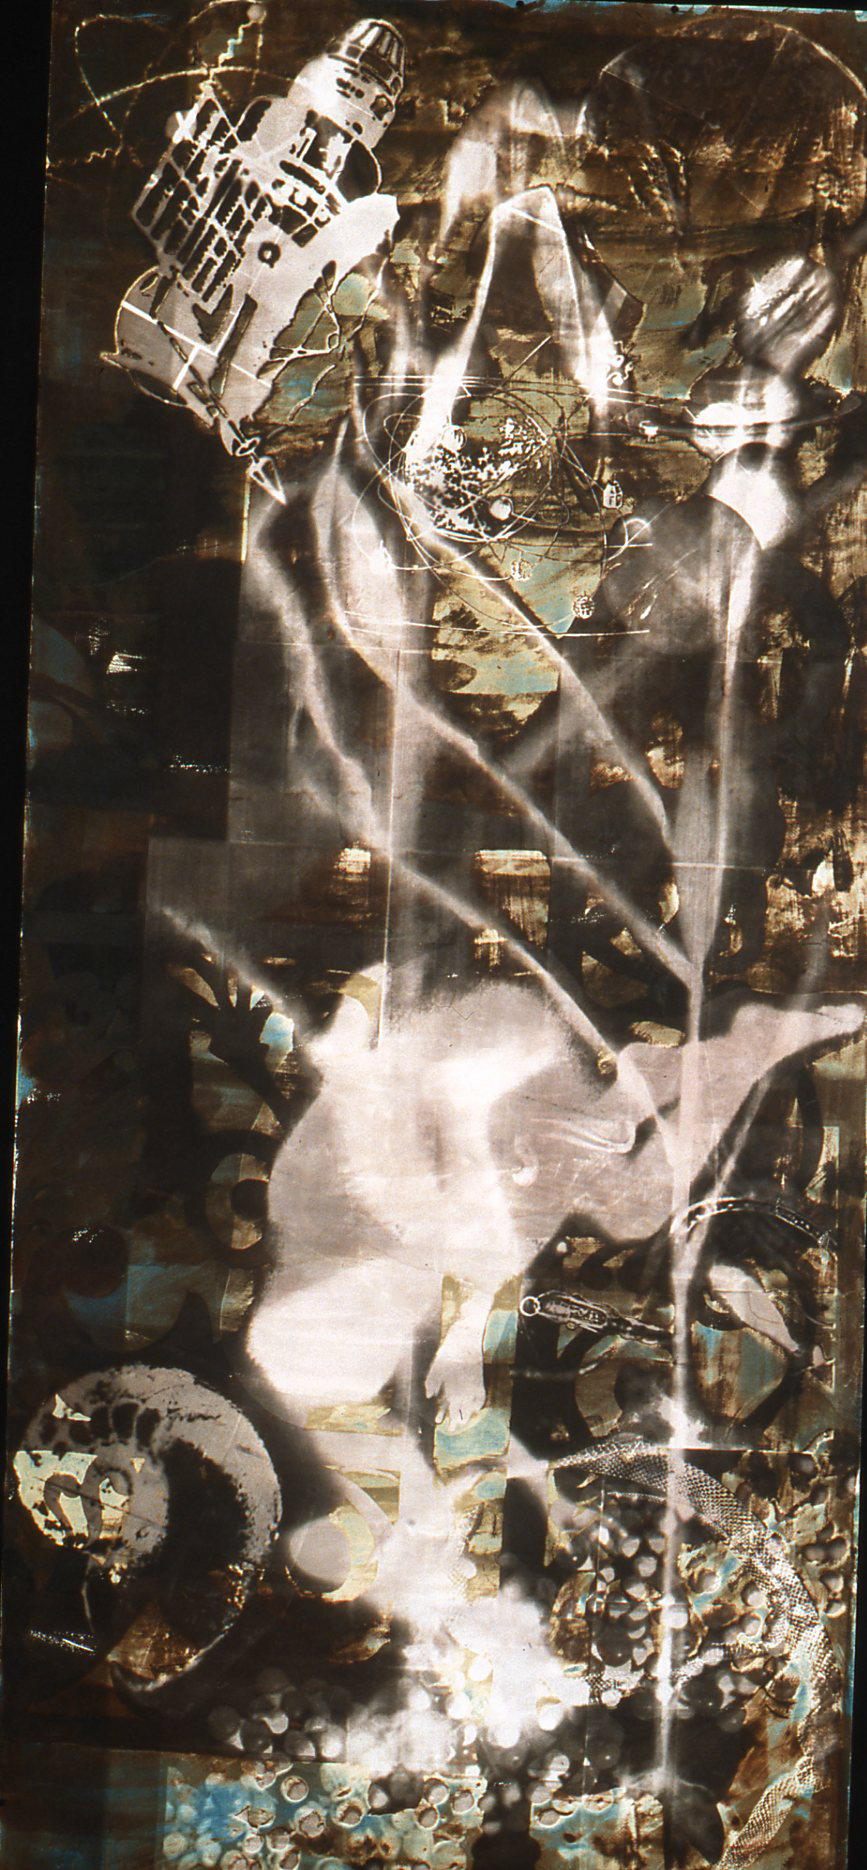 Heaven and Earth #1  , Van Dyke and Cyanotype, 42 x 96 inches, 1998, Collection of the Peel Art Gallery (PAMA),  David Somers Works on Paper Collection